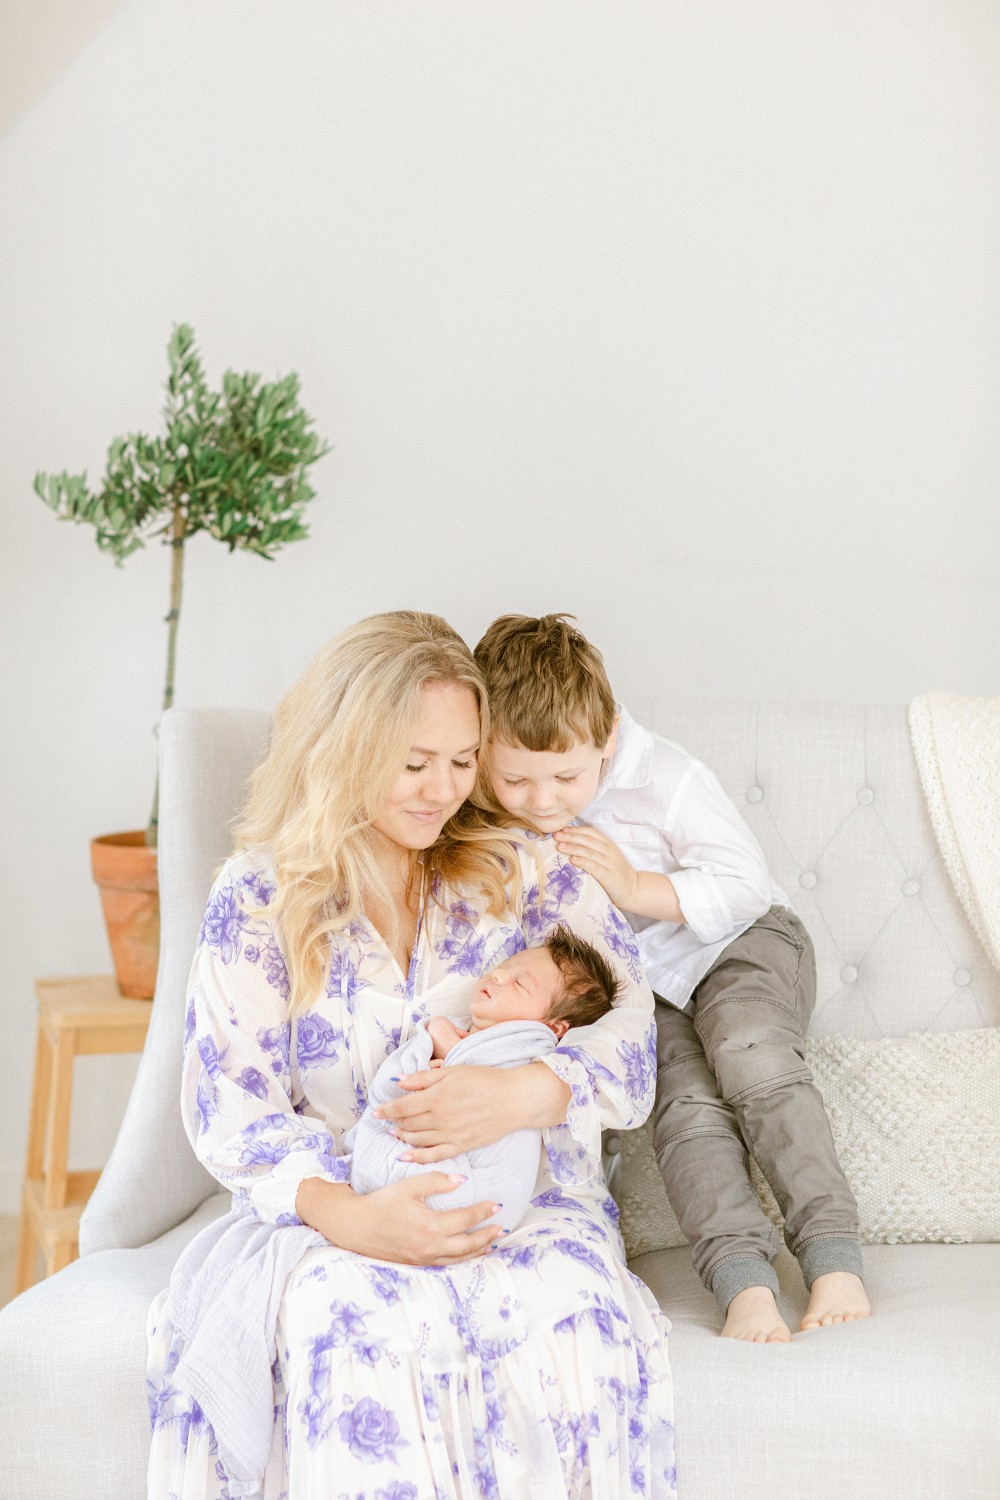 Sharing Cooper Ford's birth story with lots of newborn photoshoot ideas